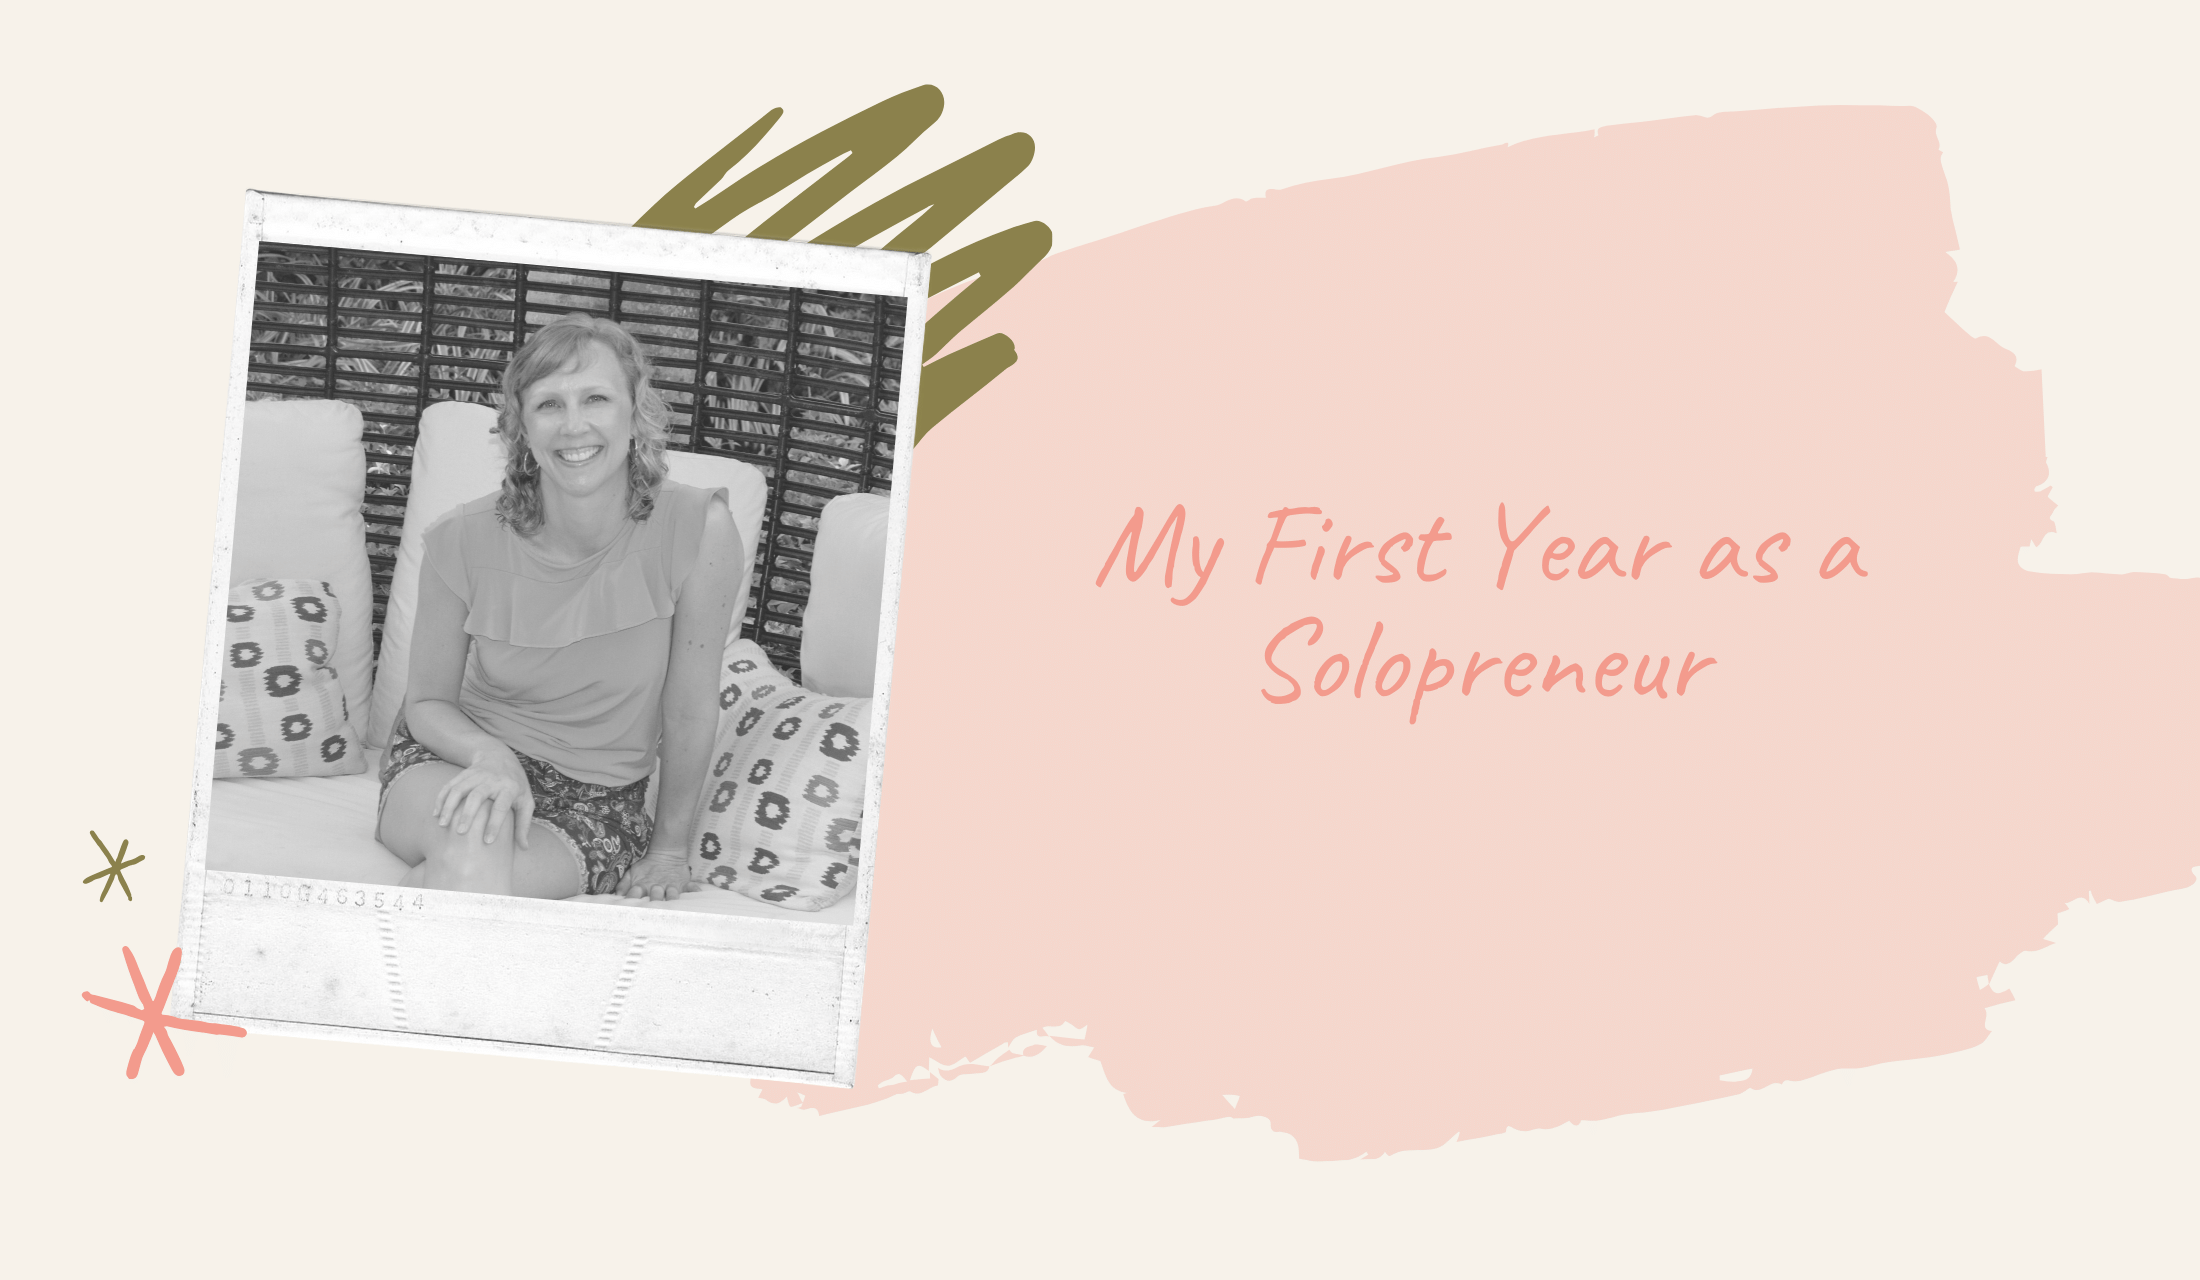 My first Year as a Solopreneur